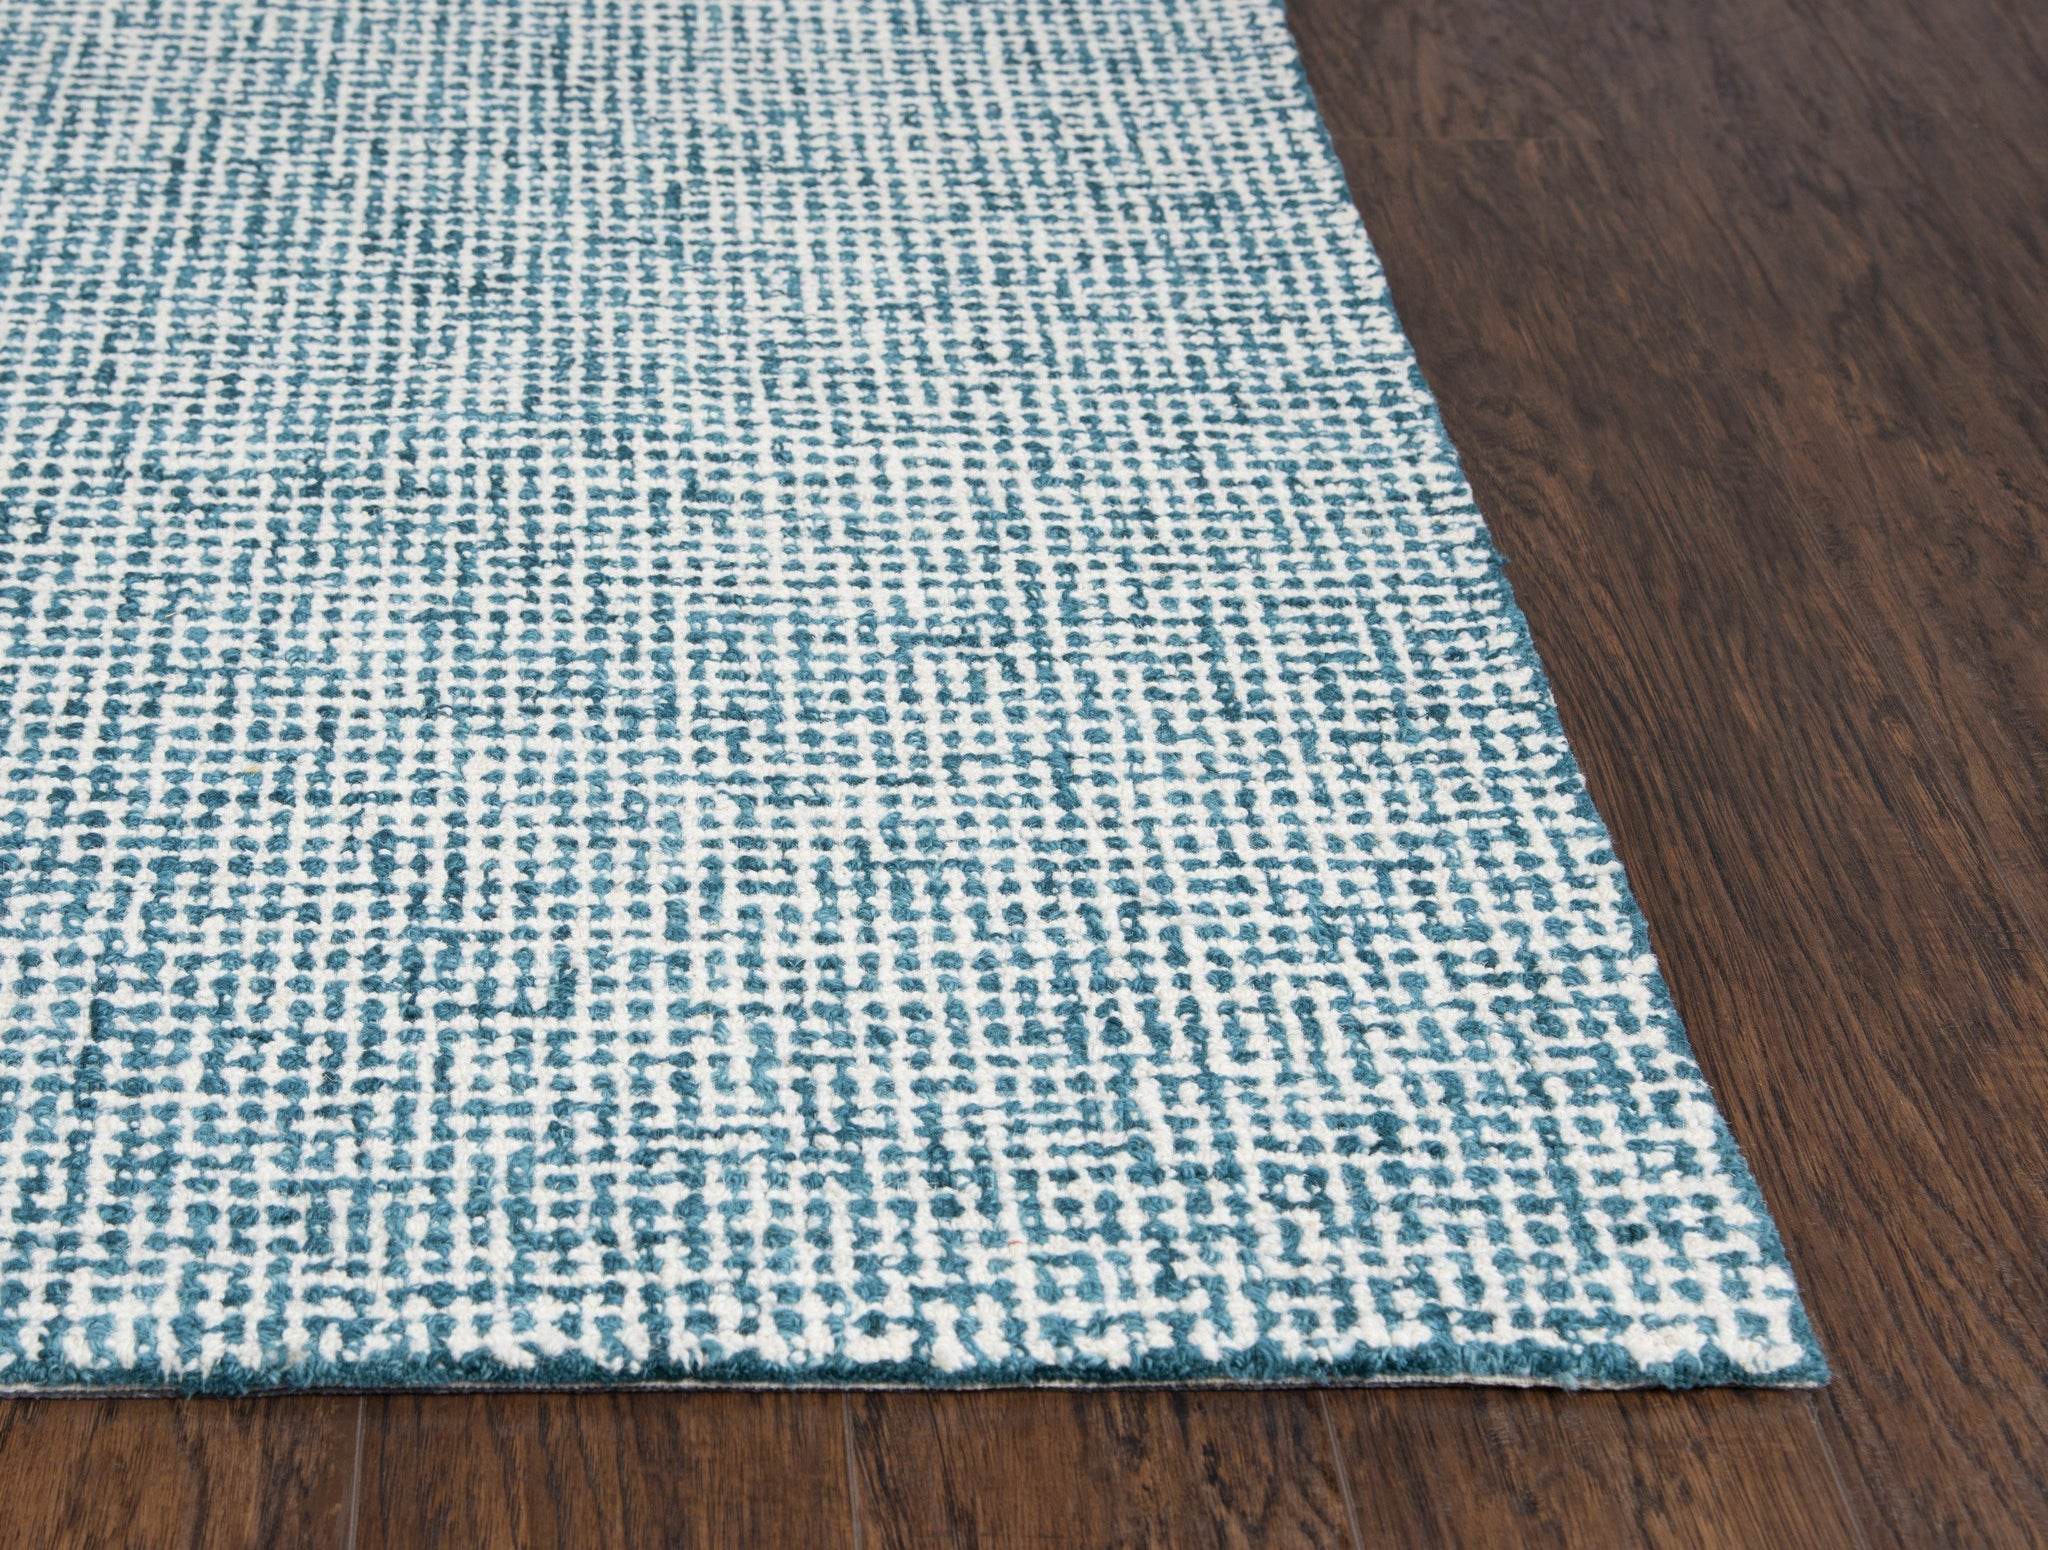 Rizzy Home Area Rugs Brindleton BR697B Teal Area Rug in 39 Unique Shapes and Sizes